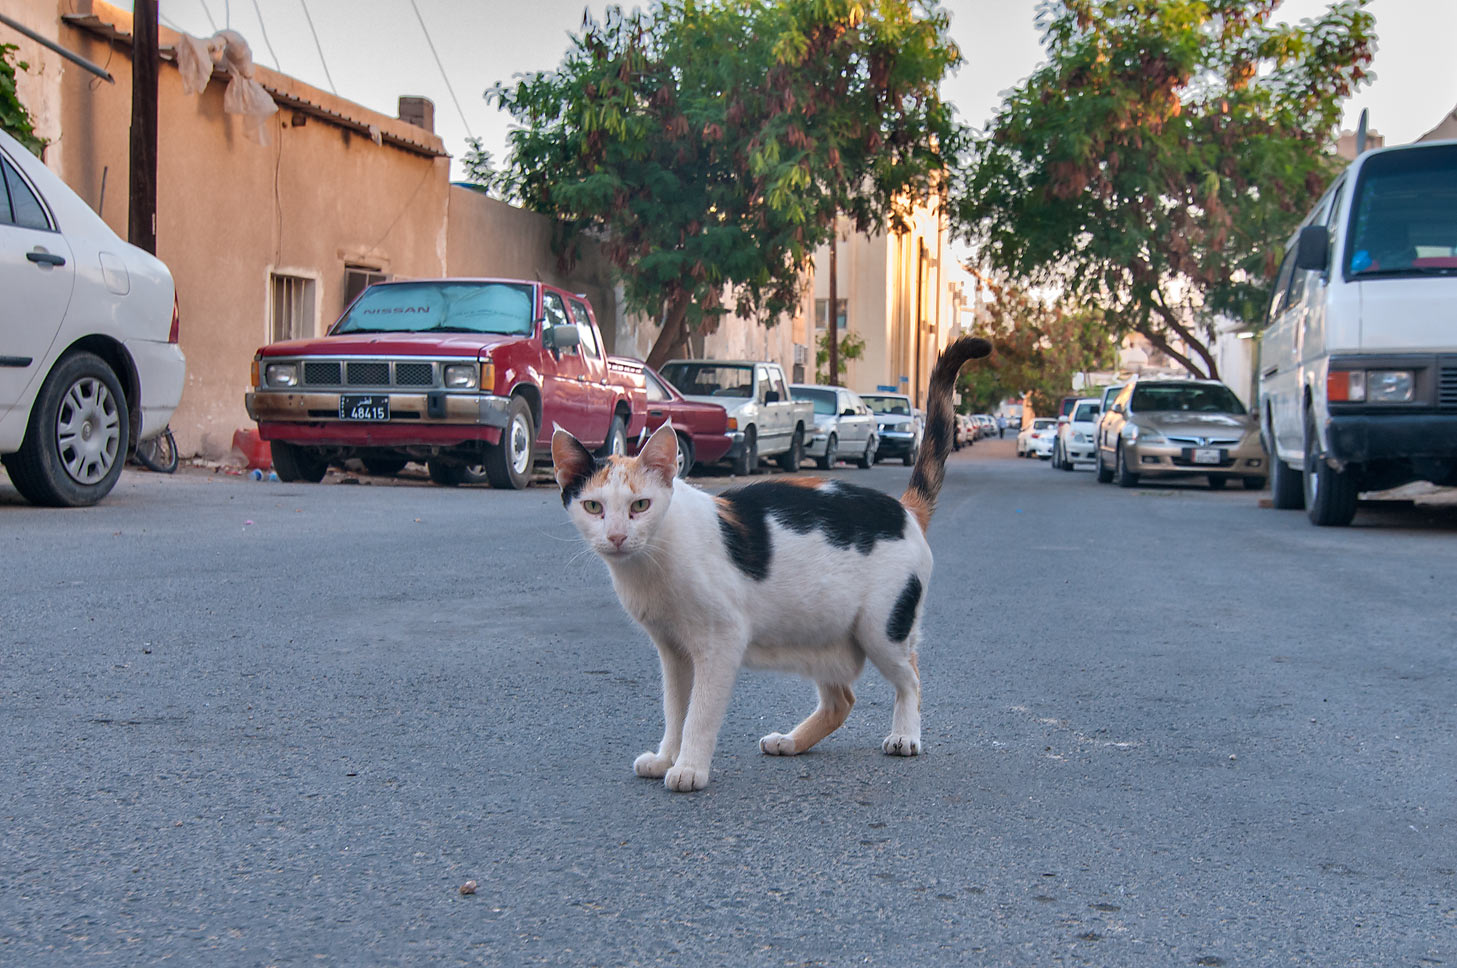 Calico cat walking on Umm Wishah St. near Al Diwan, Musheirib area. Doha, Qatar